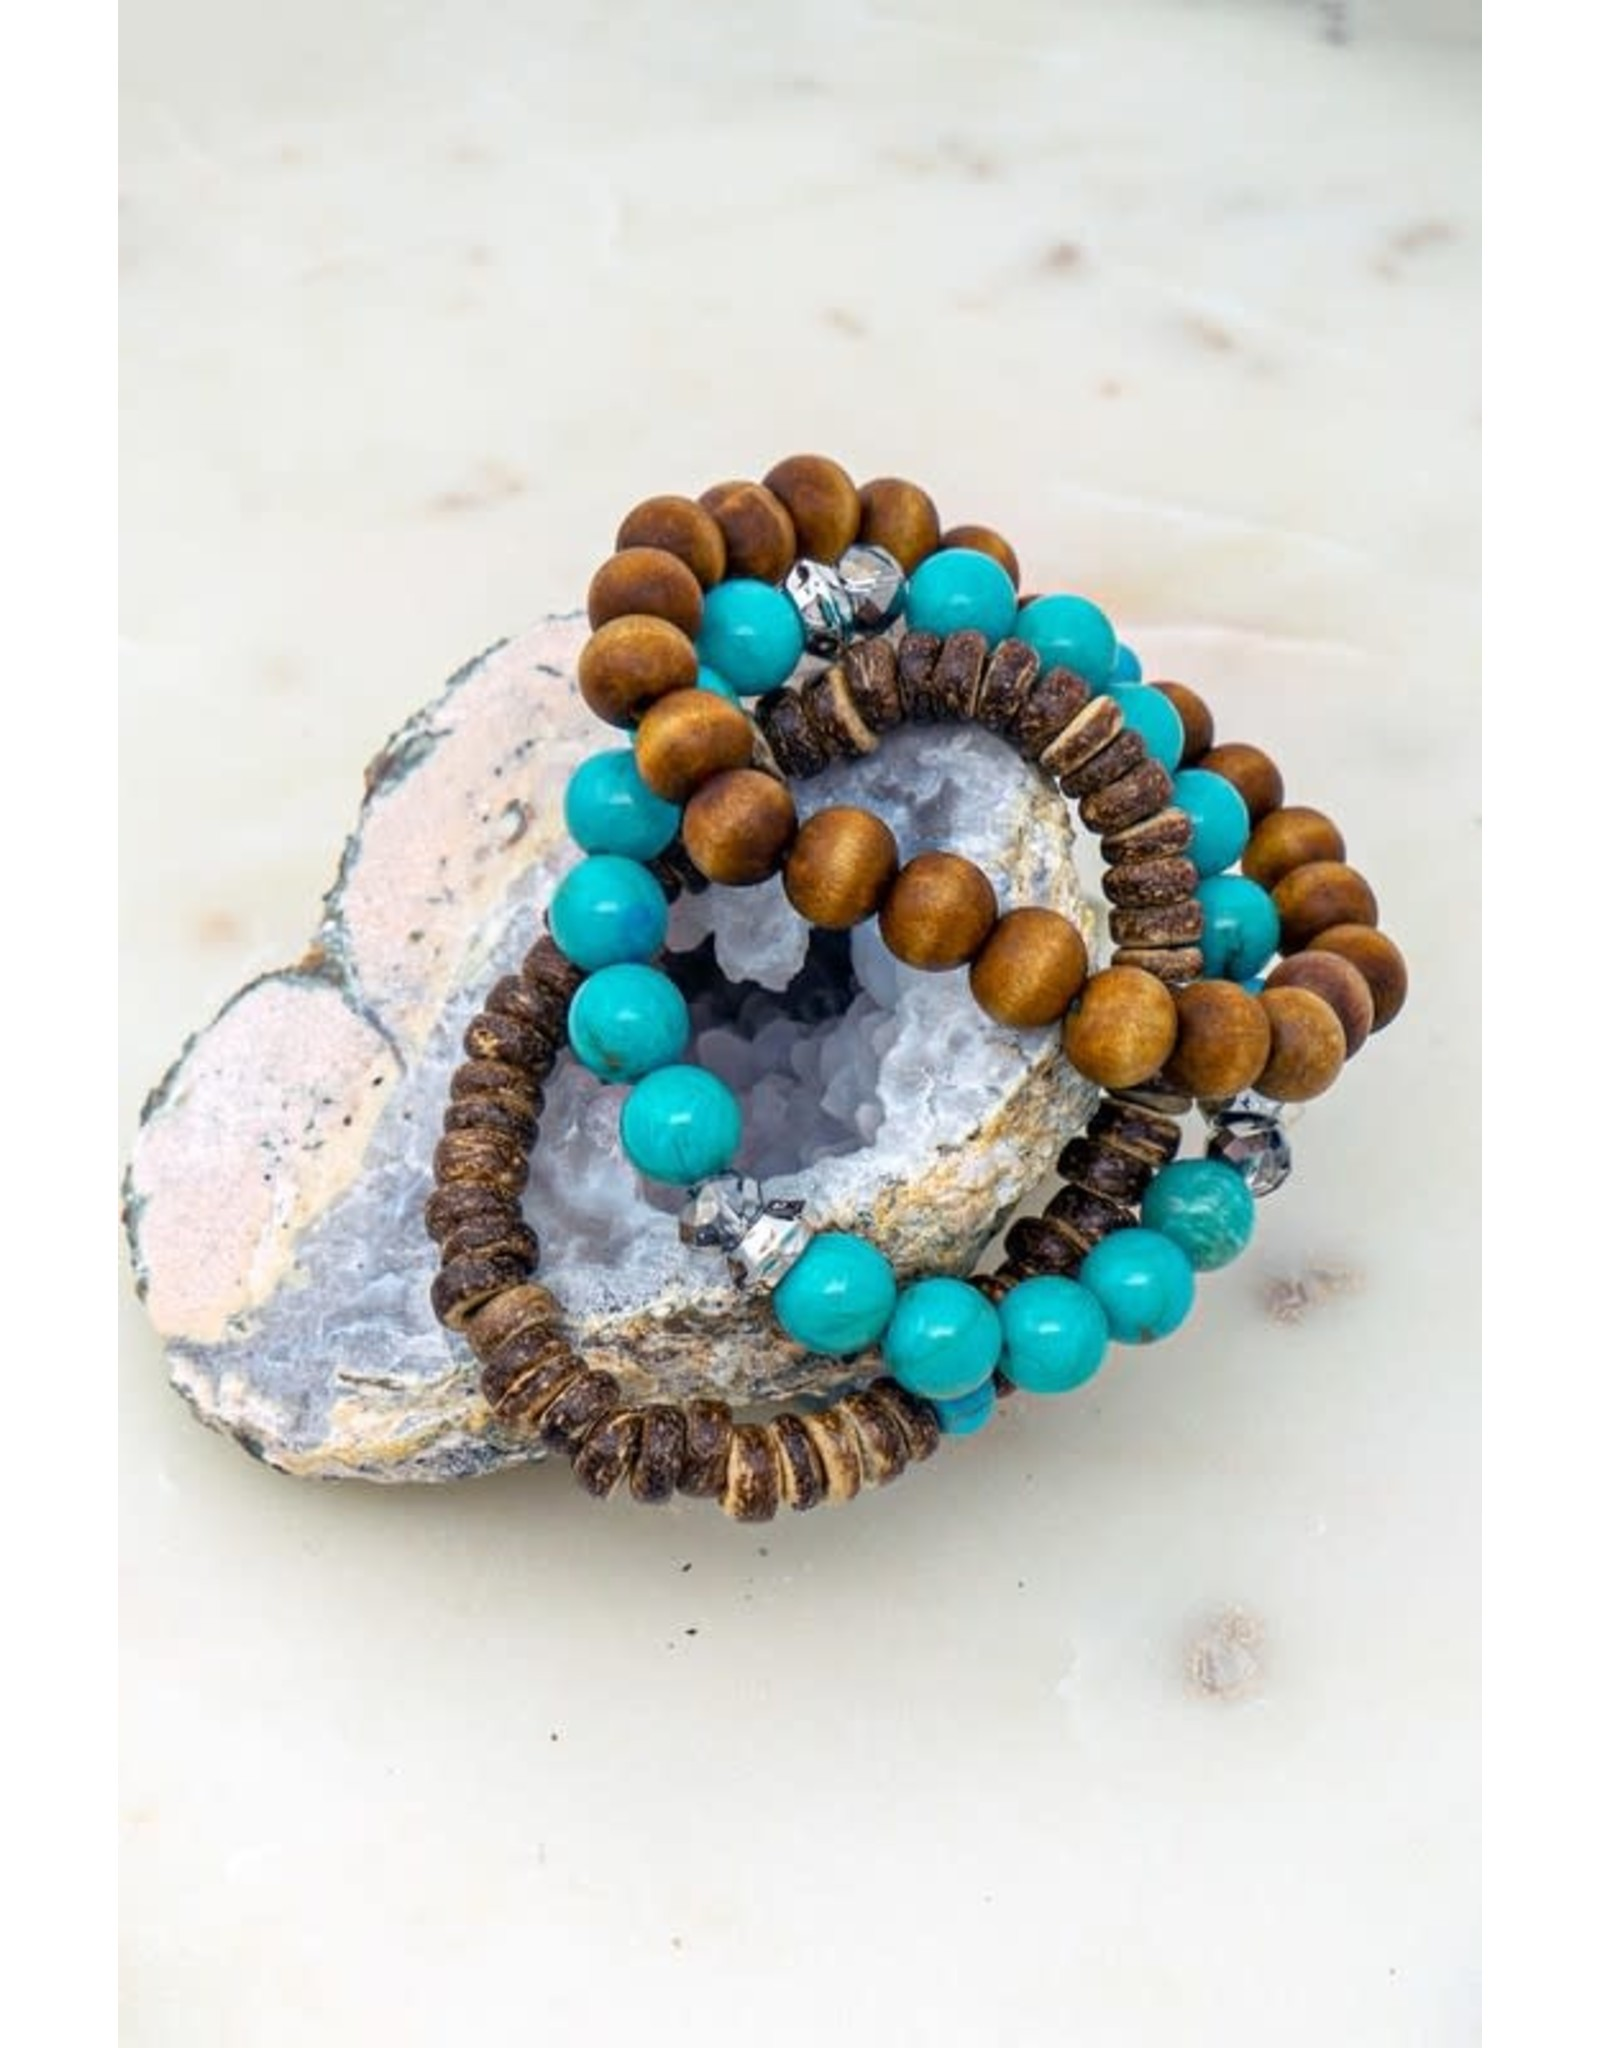 Wear separately or together these three bracelets feature wooden and turquoise colored beads. Size + Fit Diameter: 2.25 In. Different Wooden And Turquoise Beaded Bracelets - Color: Brown